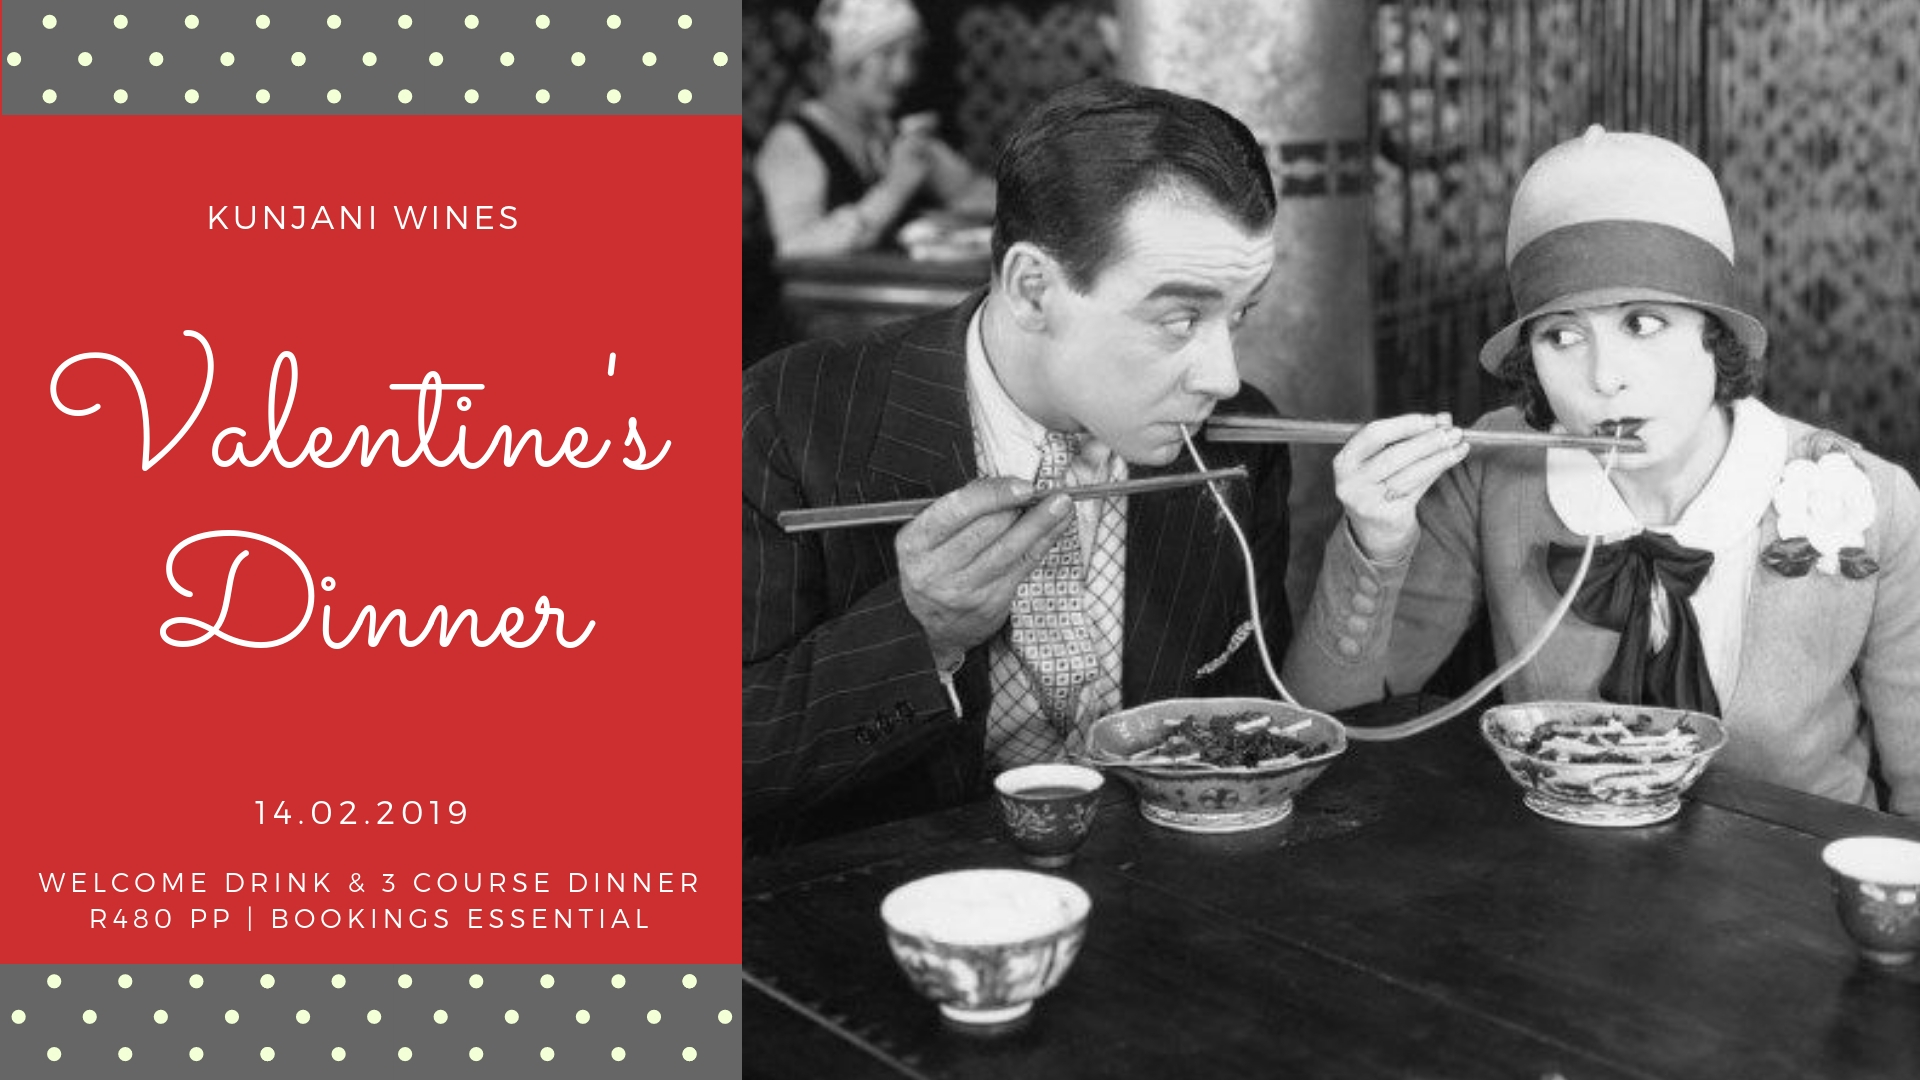 Old School Romance at Kunjani Wines this Valentine's Day photo